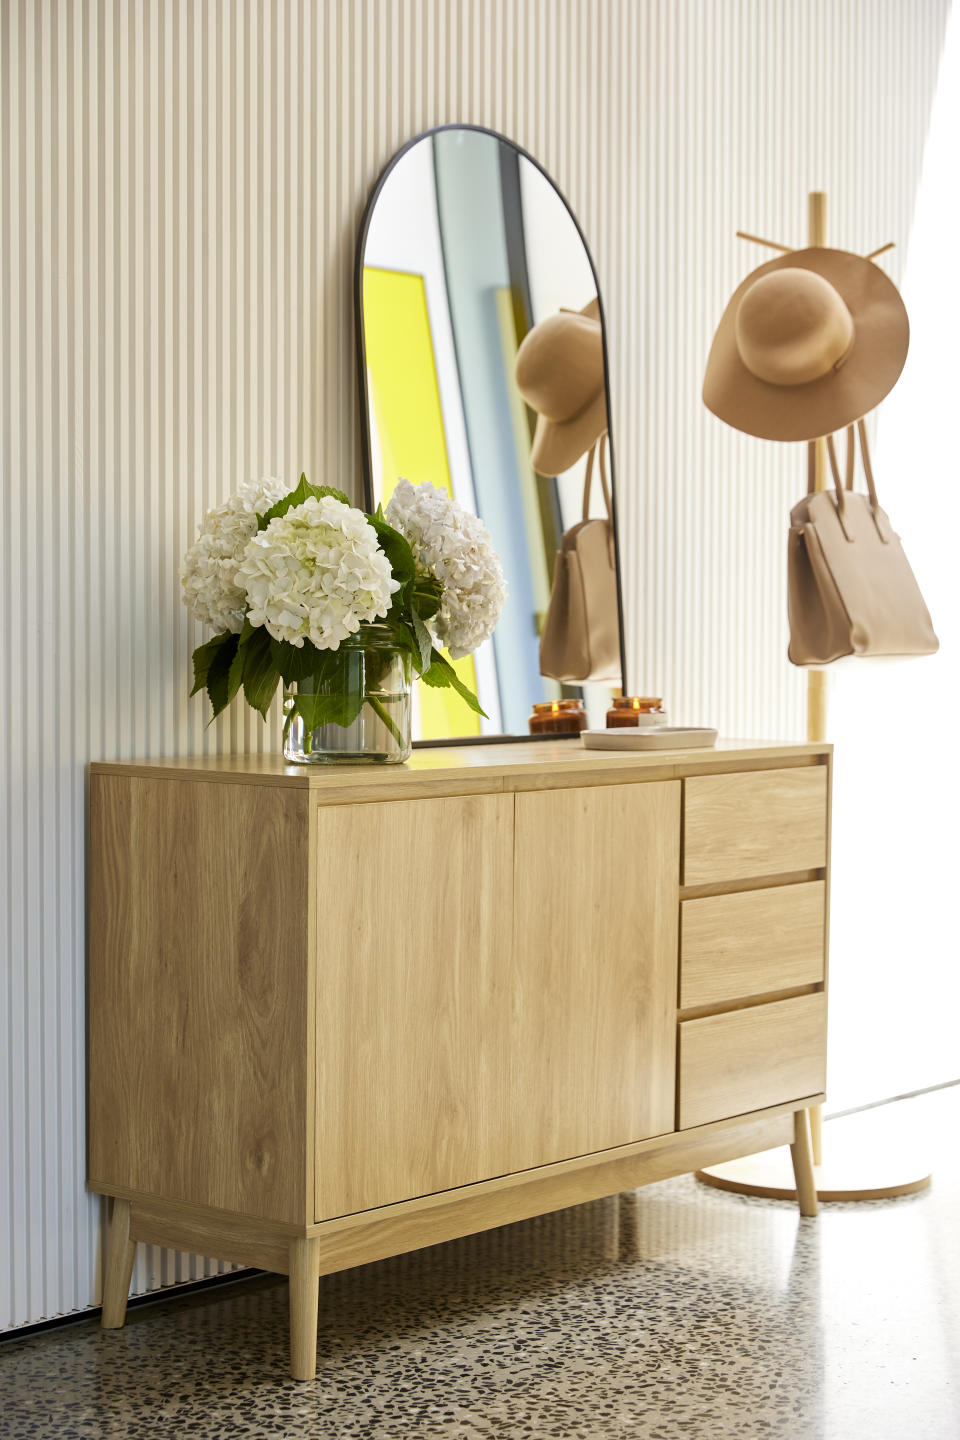 Fans will likely go nuts over the new light wooden pieces. Photo: Supplied